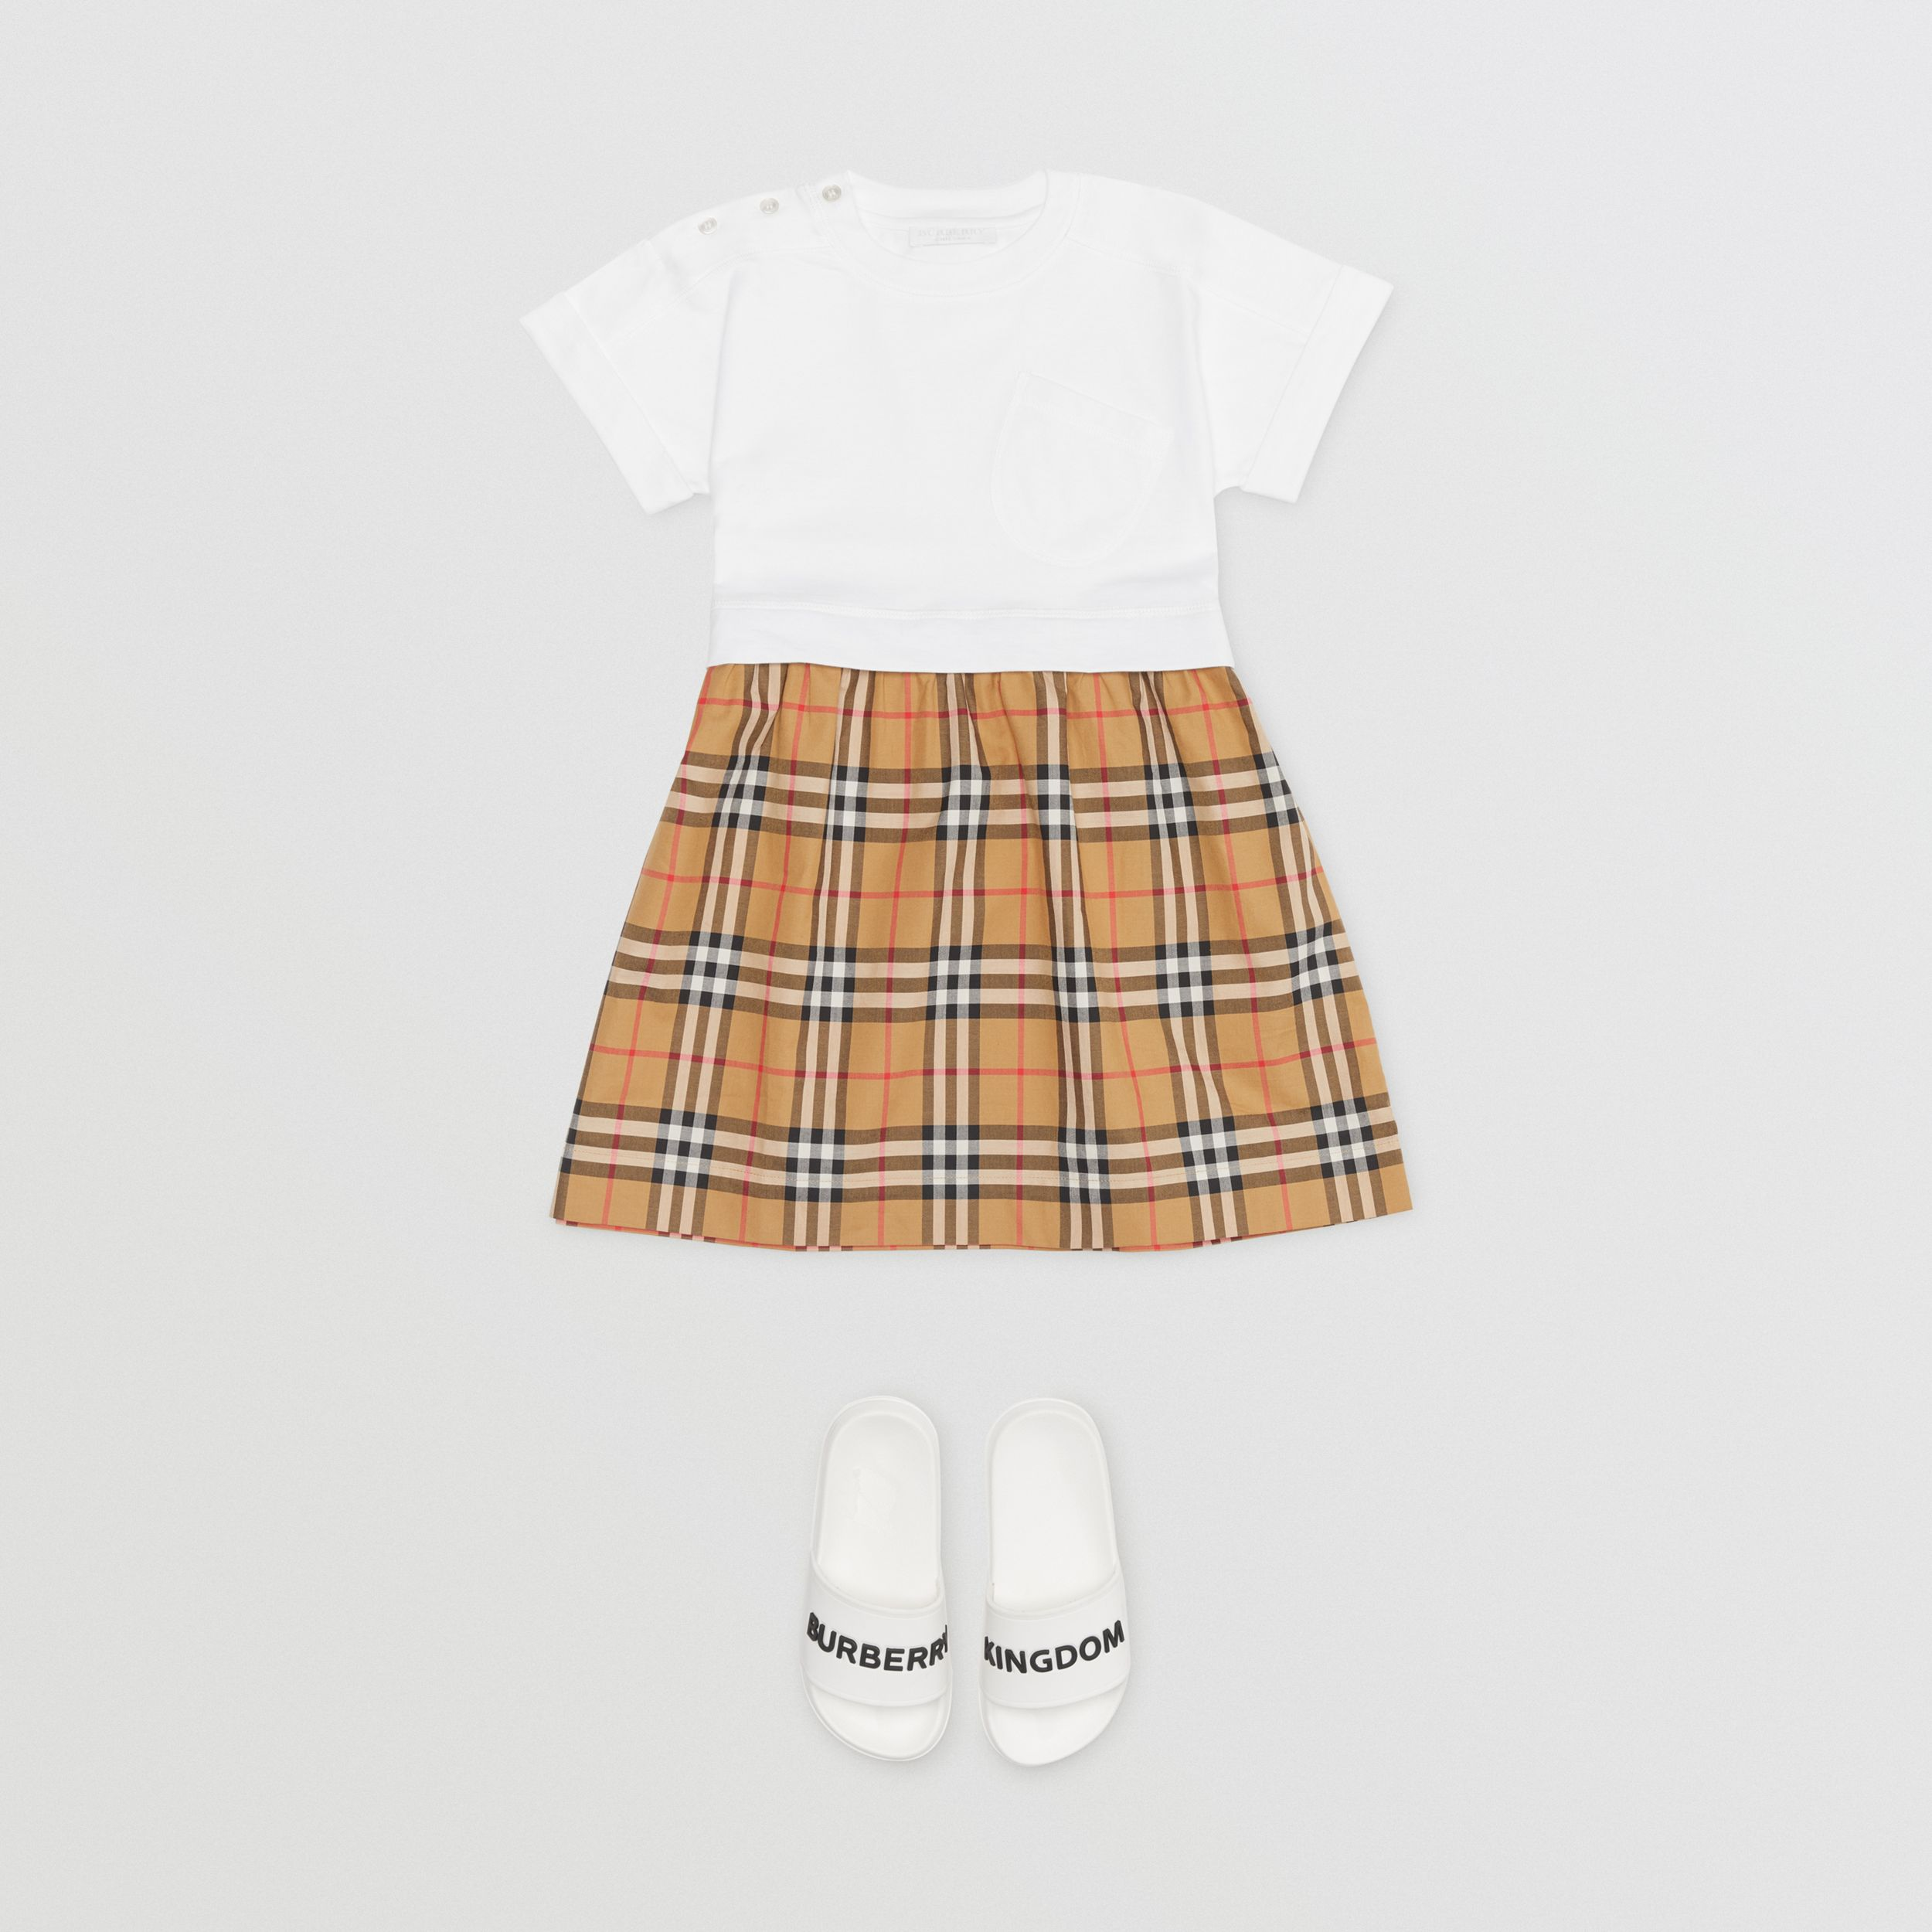 Vintage Check Cotton Dress in White | Burberry - 3